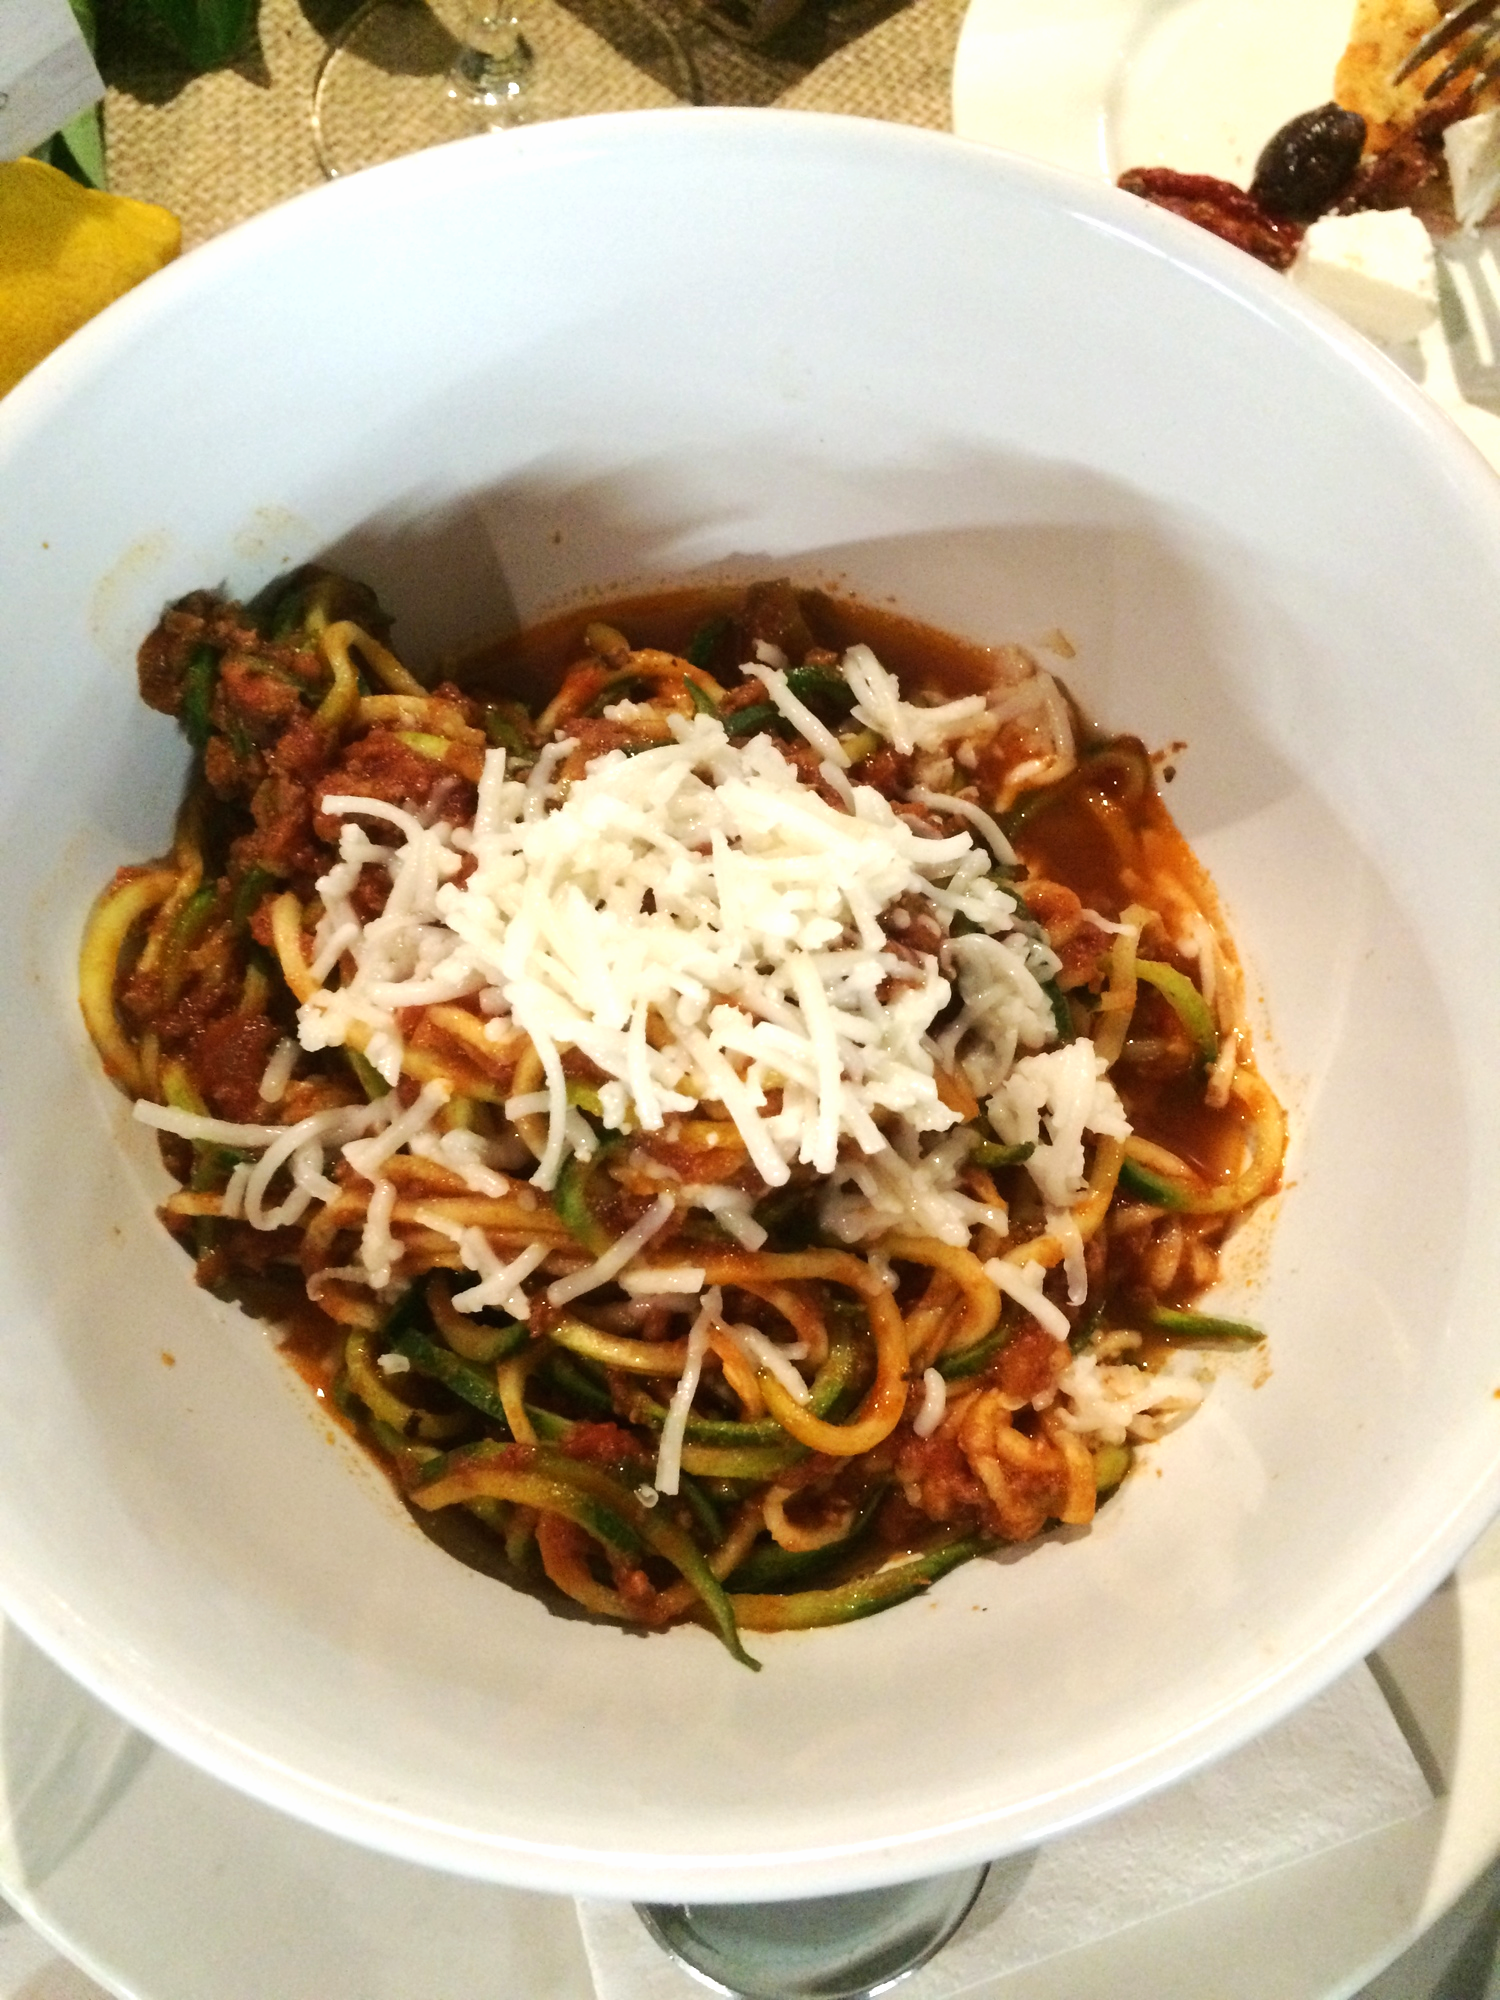 Spaghetti Bolognese with Zucchini pasta, topped with goats cheese